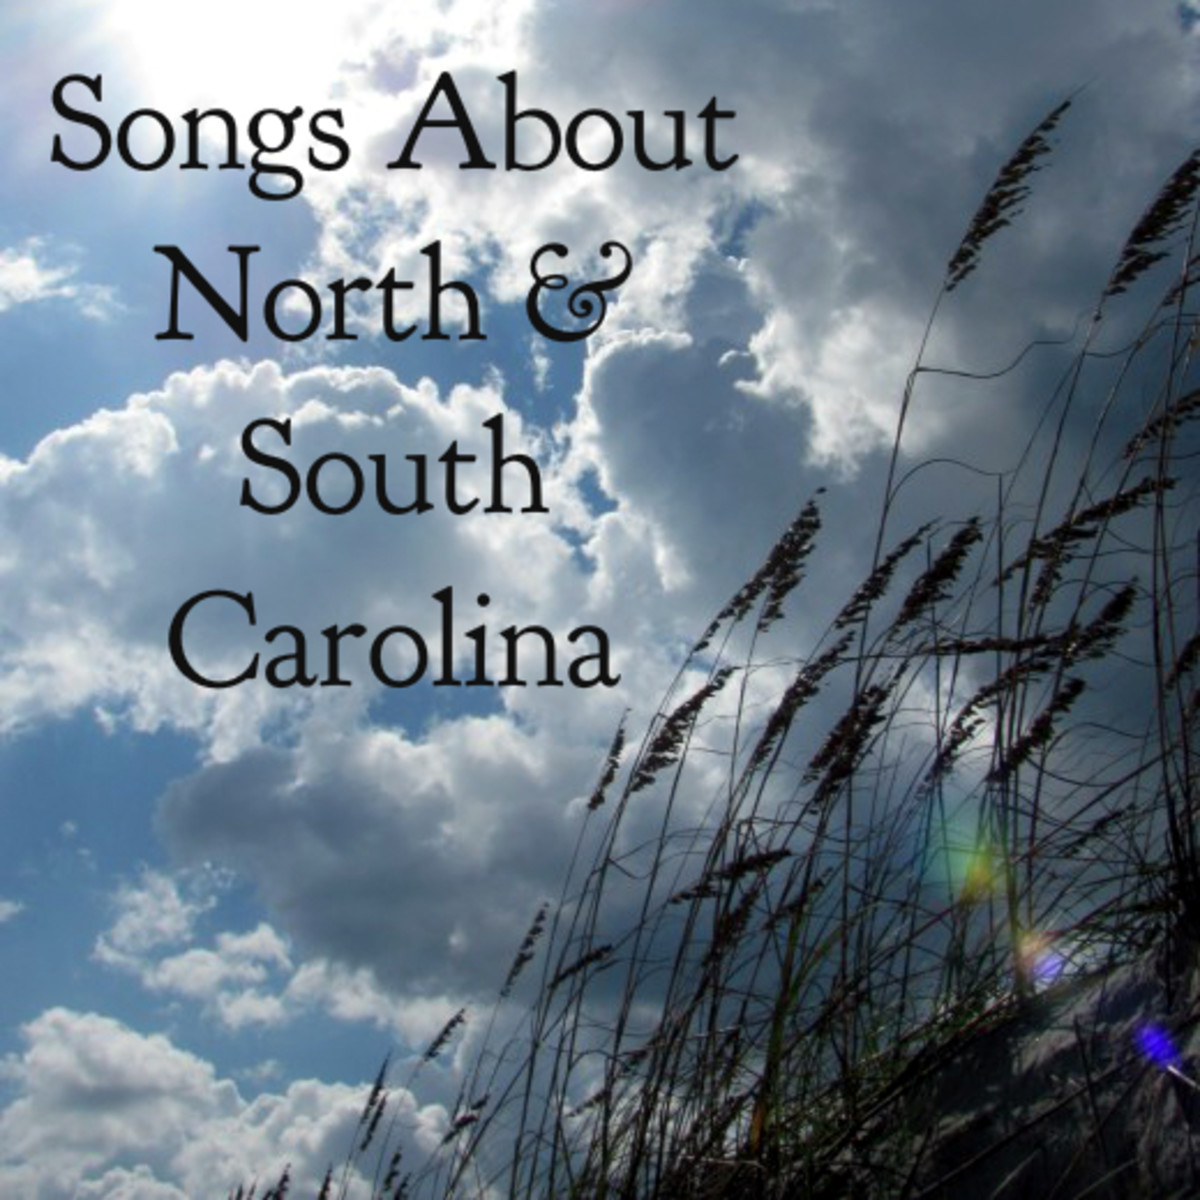 52 Songs About North Carolina and South Carolina